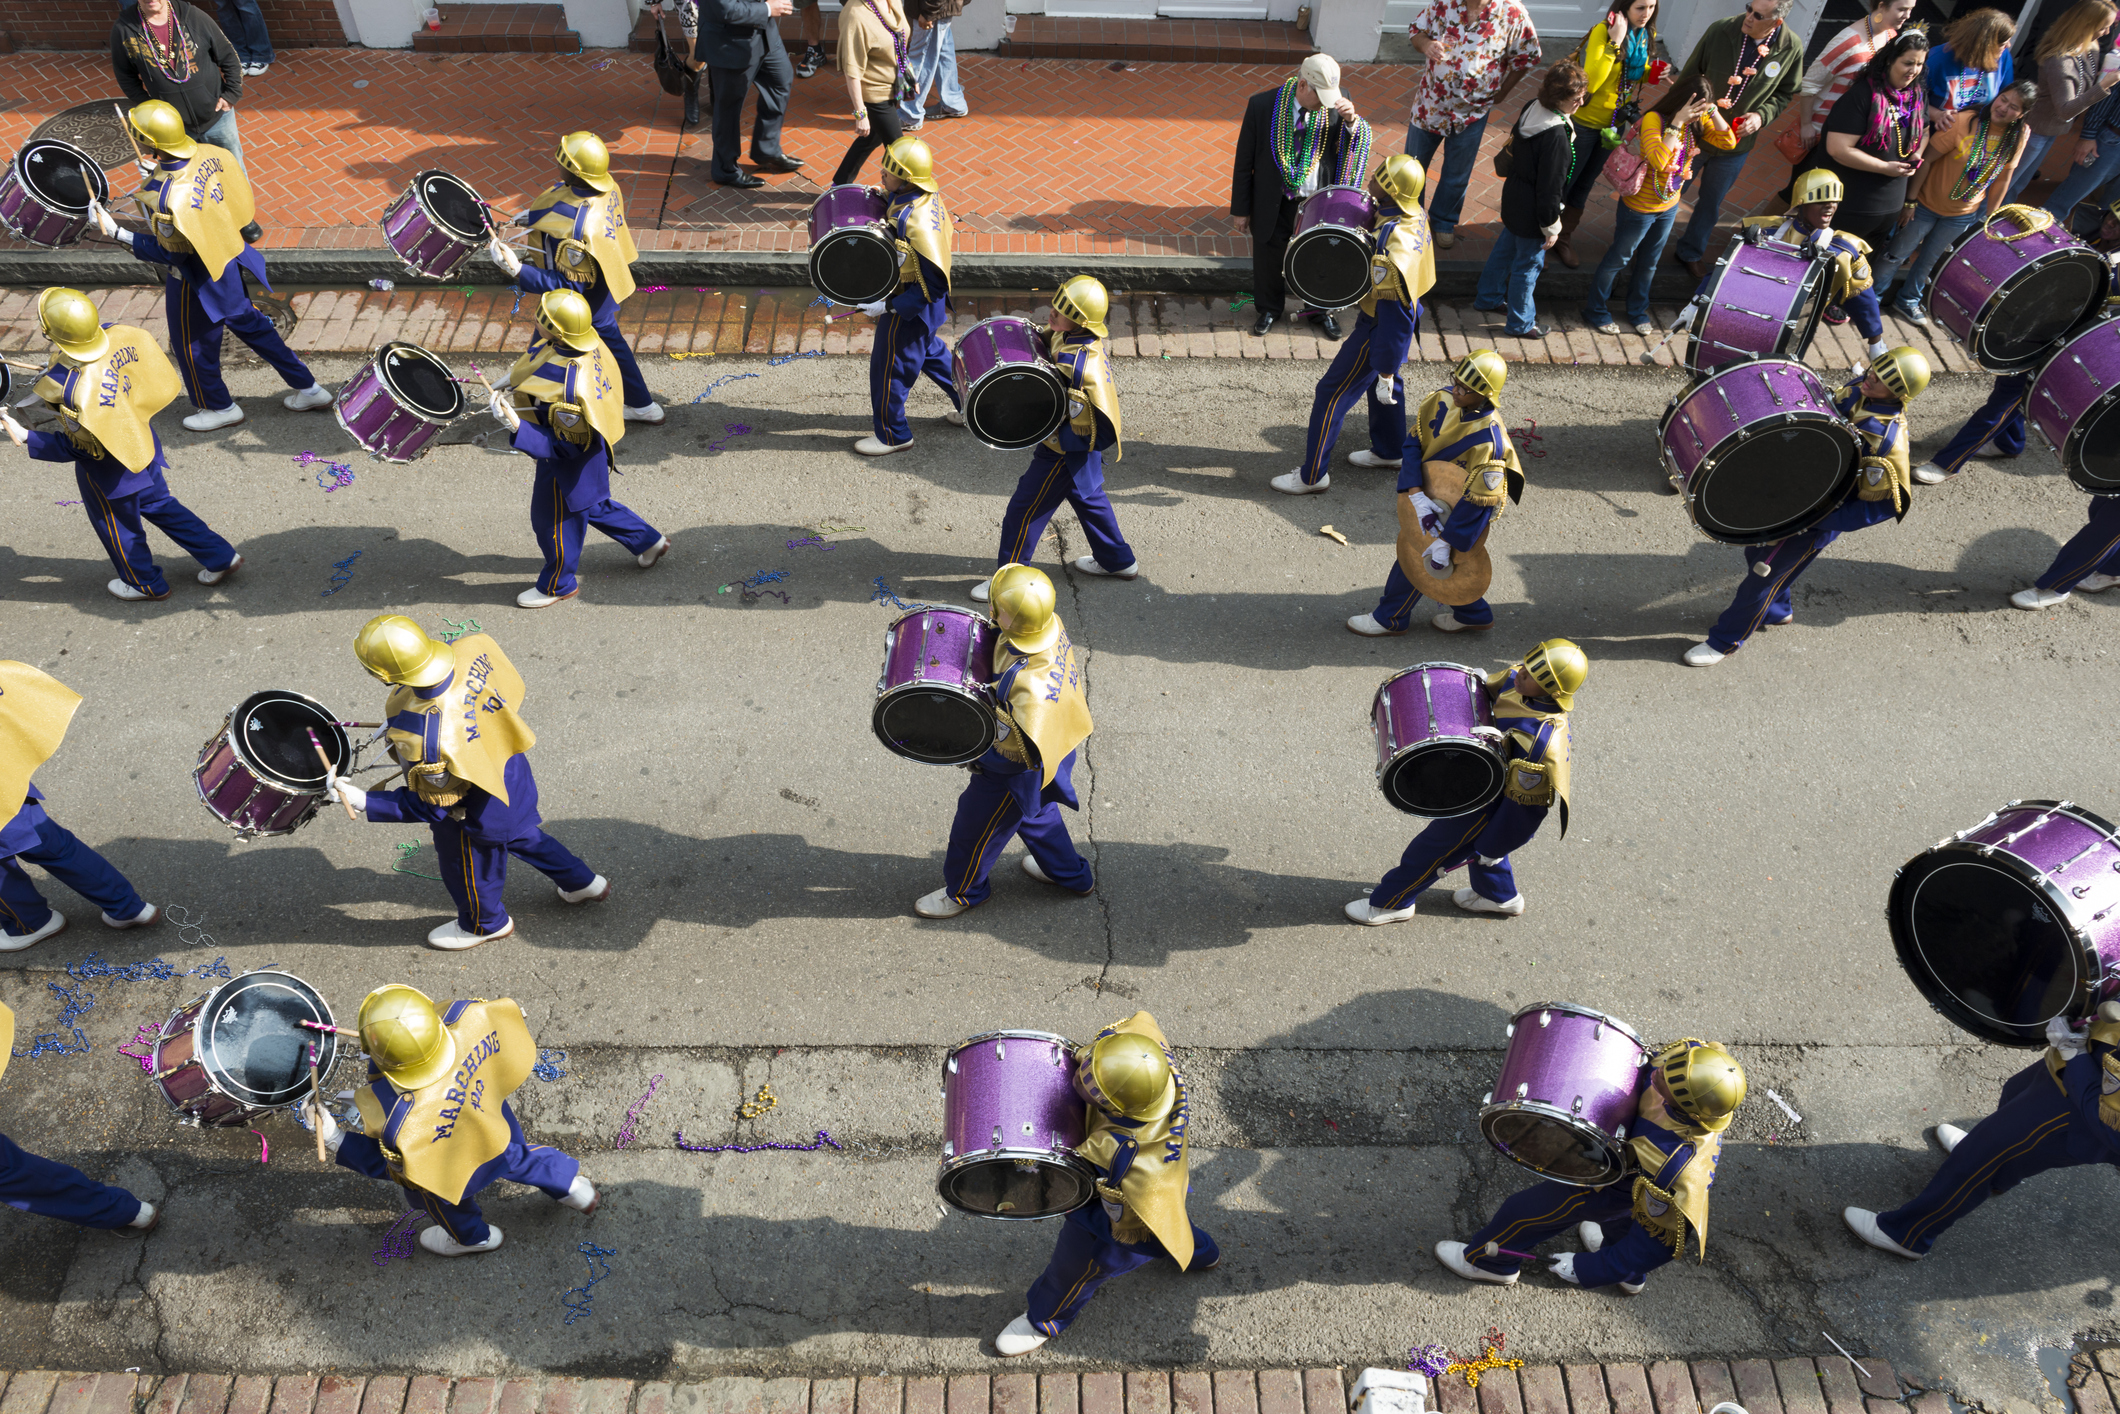 What is the best drone to film my marching band?